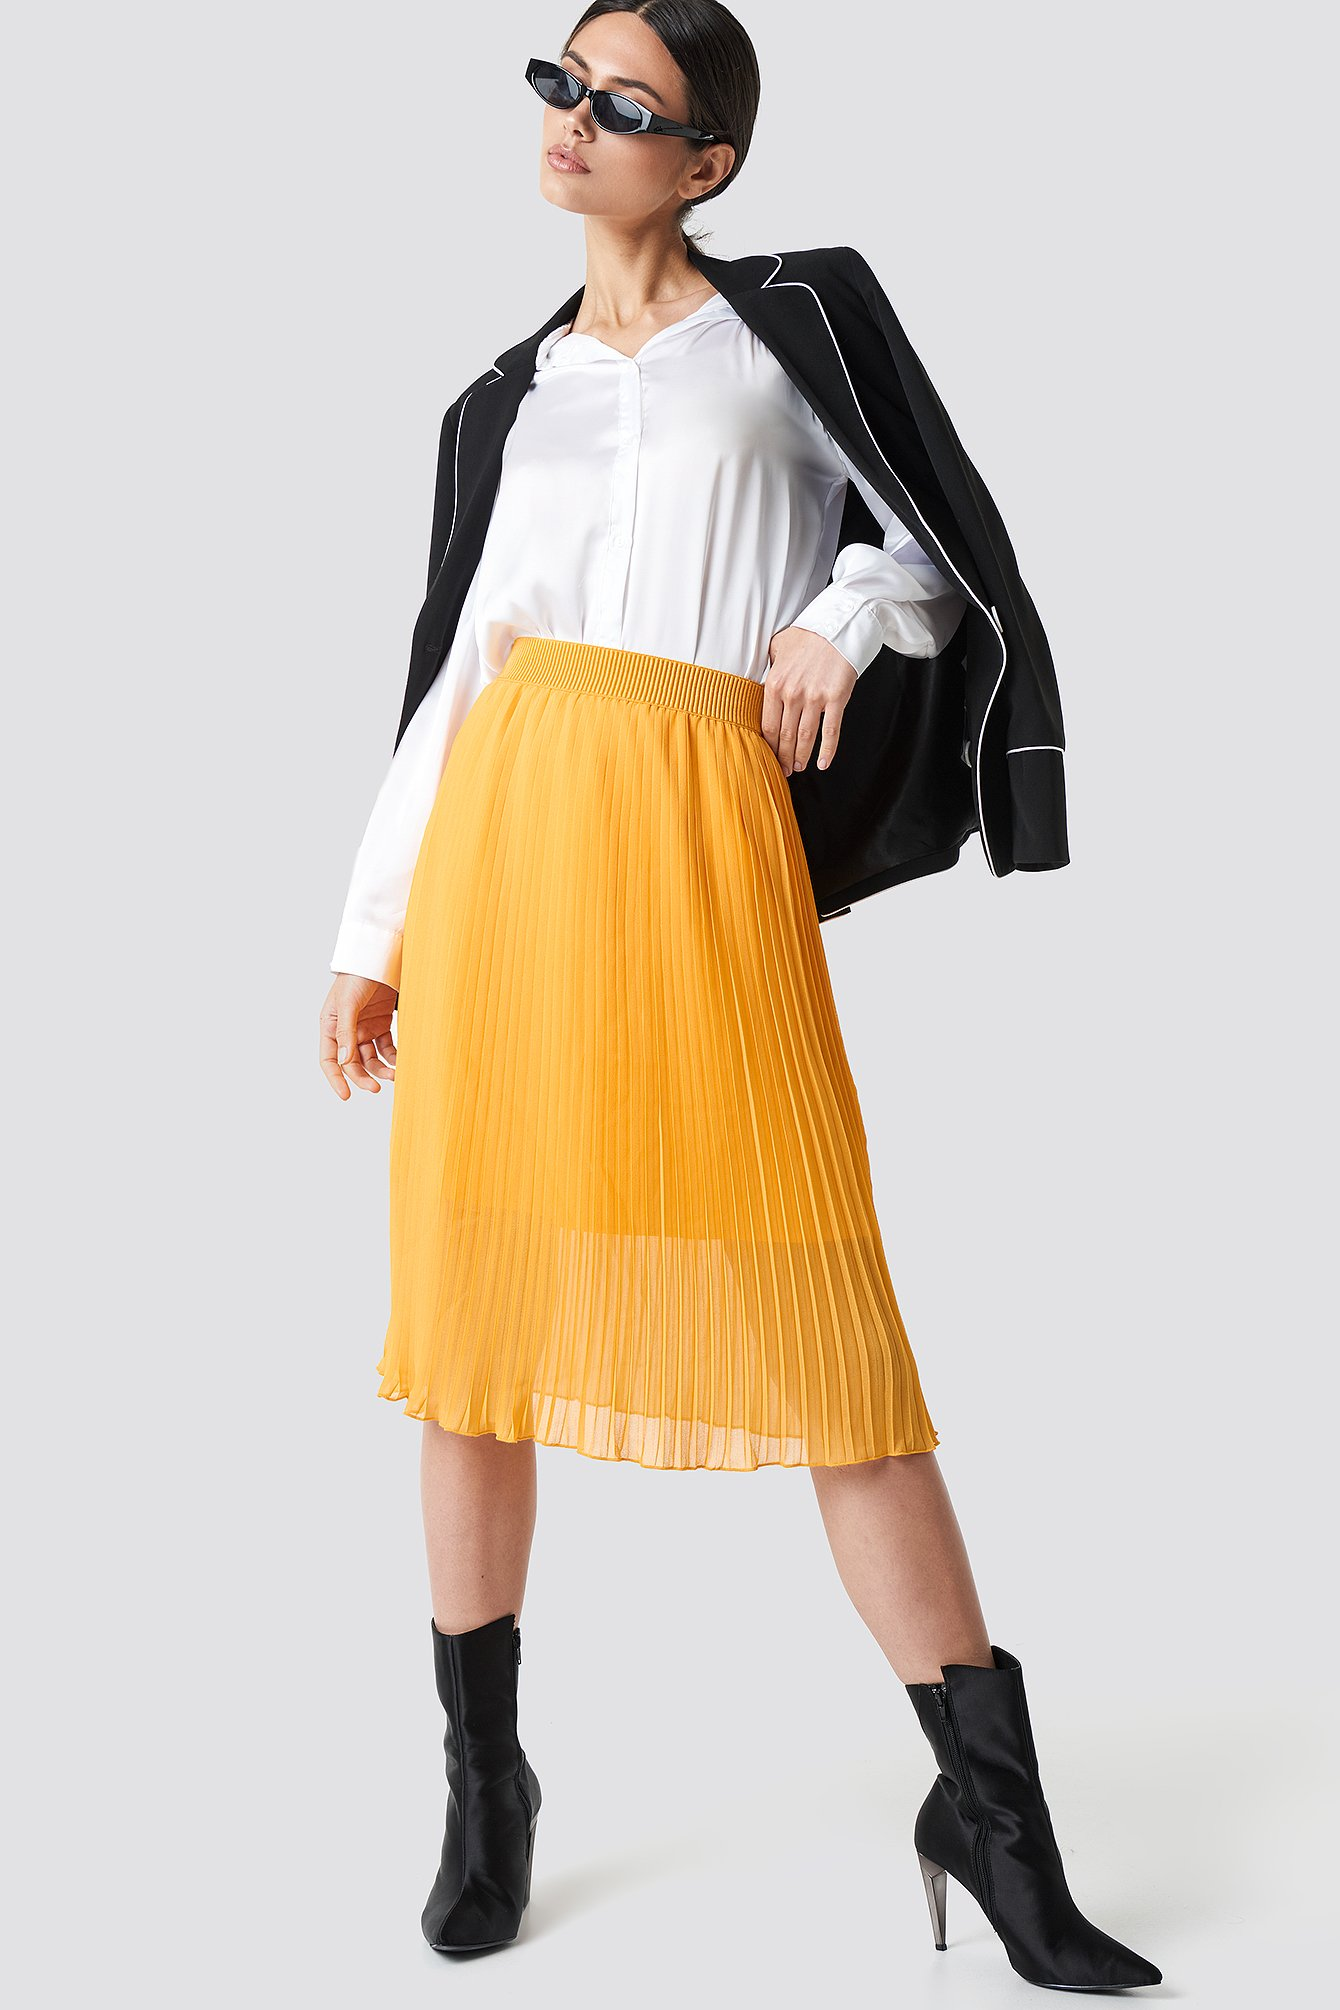 na-kd -  Pleated Midi Skirt - Orange,Yellow